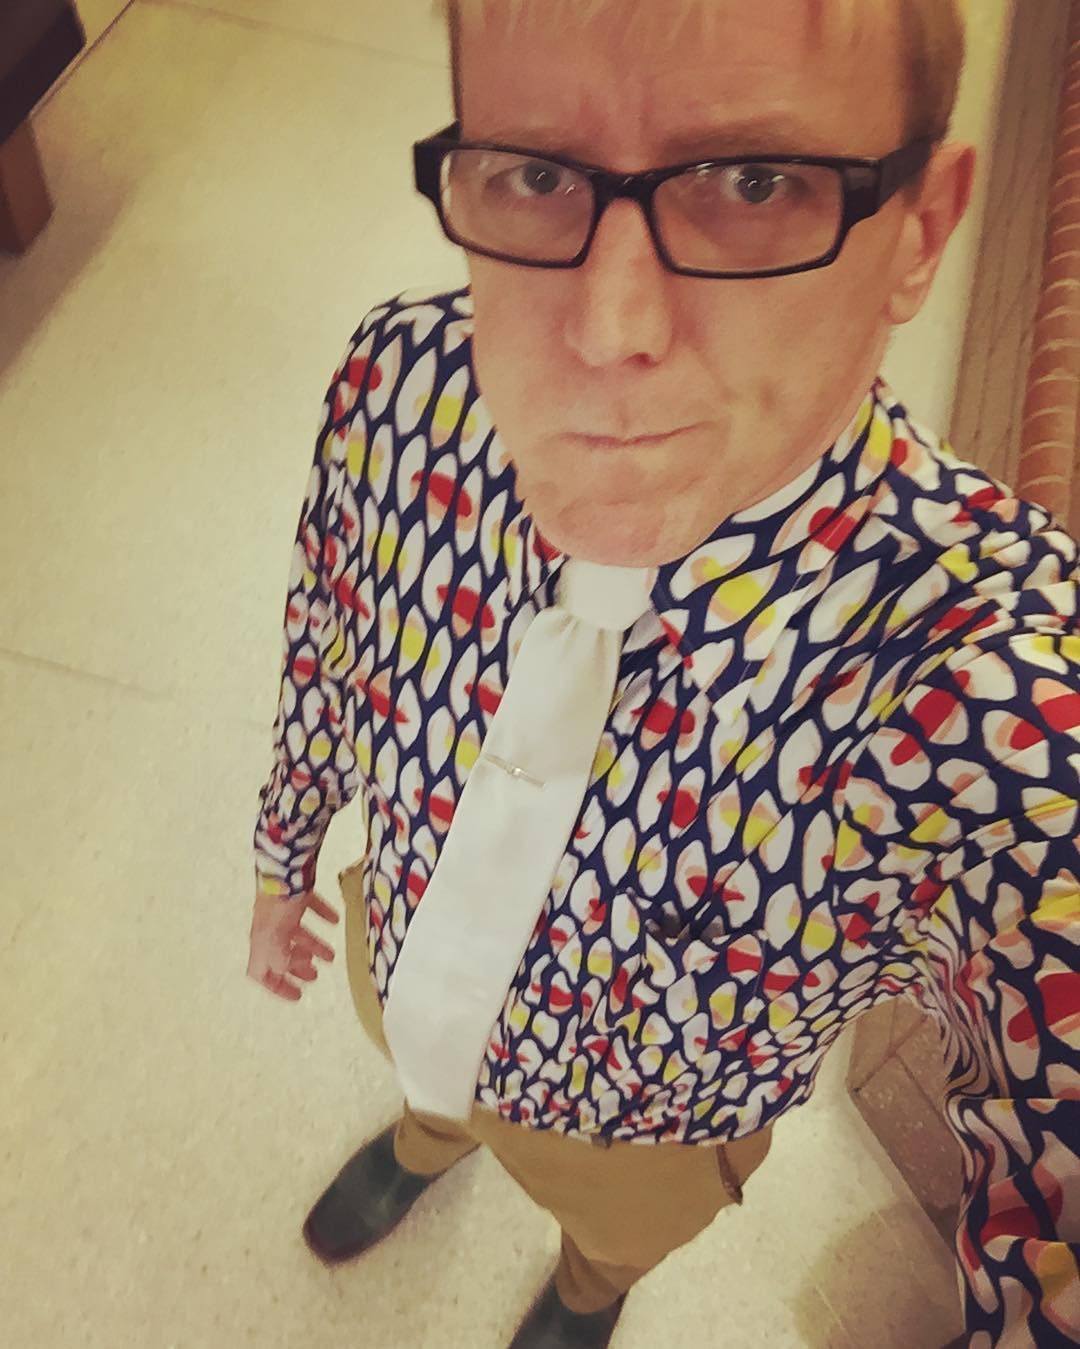 """Two random students told me they loved my #tiedayfriday outfit. Calling this shirt """"lanclos"""" cause she urged me to buy it."""